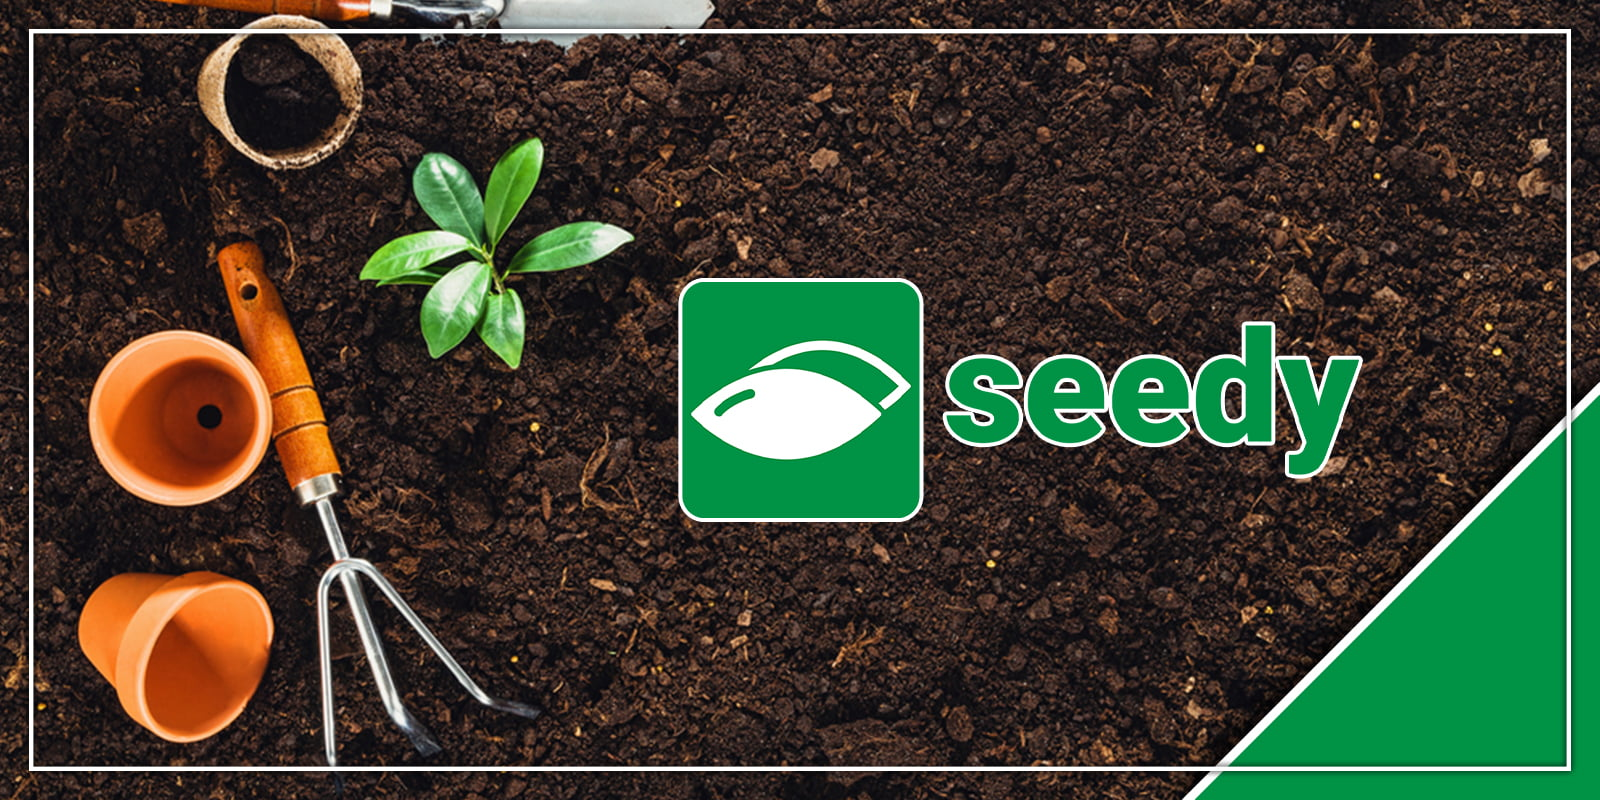 New app, Seedy, addresses the need for a cannabis-friendly online marketplace